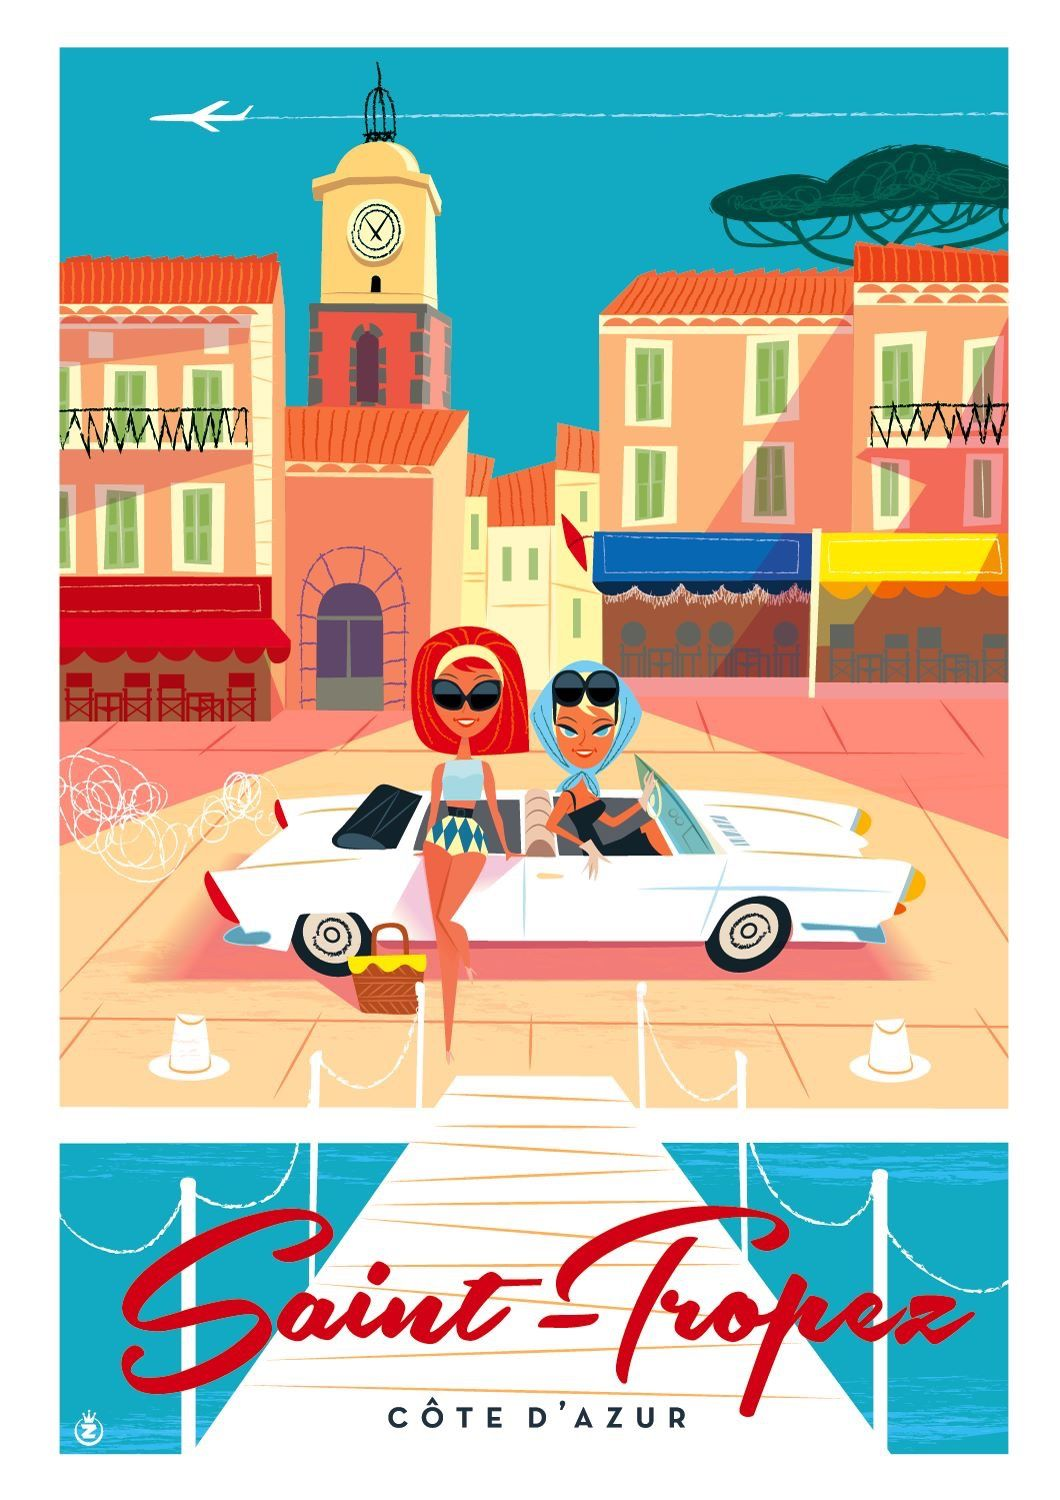 Illustration by Monsieur Z | Saint tropez | Pinterest | Werbung und ...